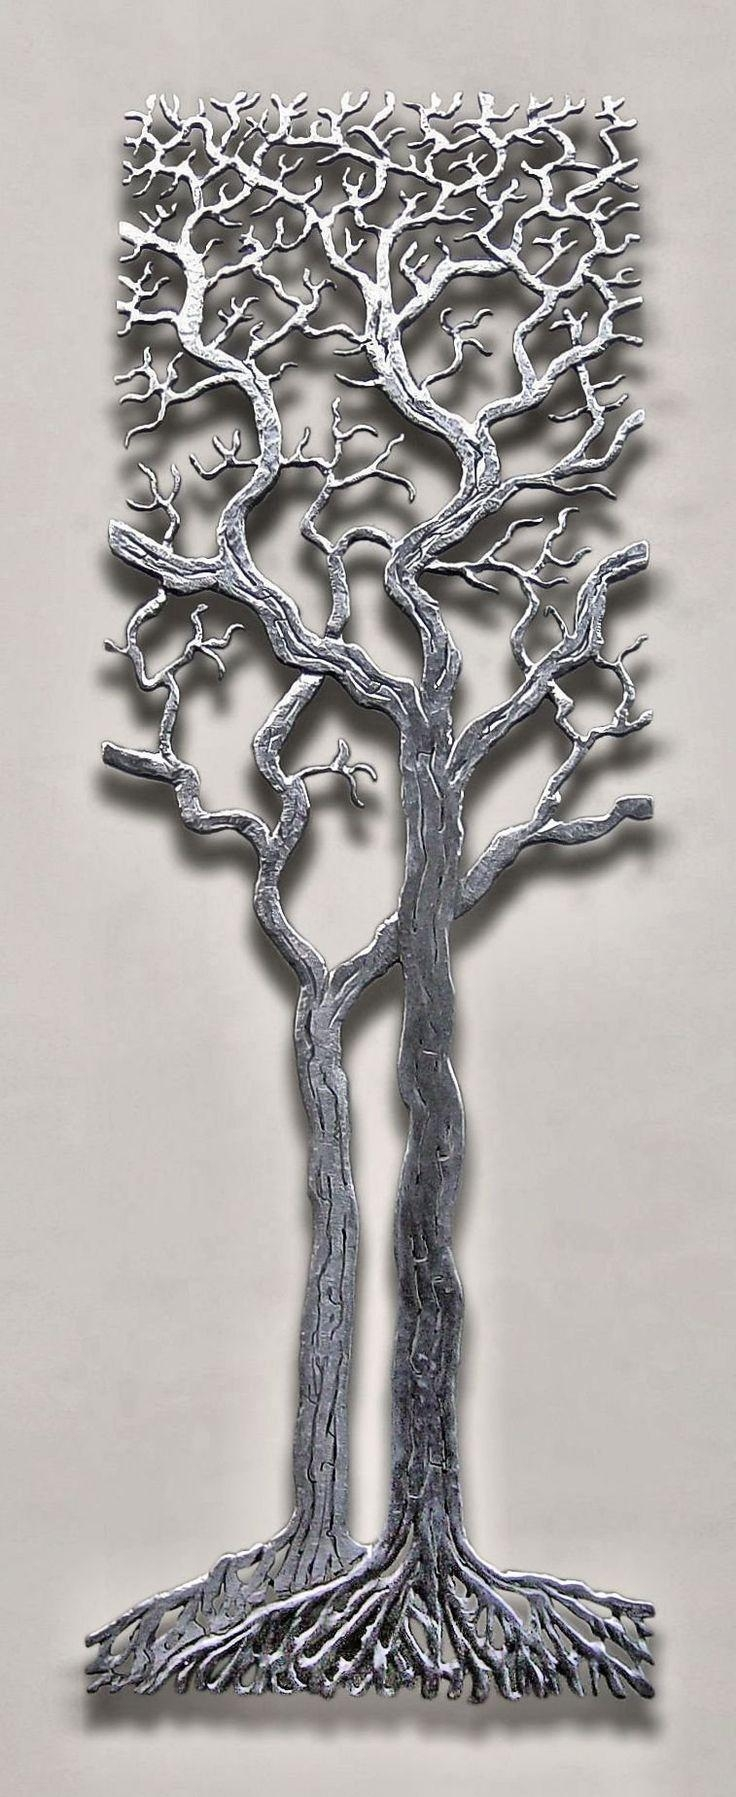 Best 25+ Metal Wall Art Ideas On Pinterest | Metal Art, Metal Wall With Regard To Metal Peacock Wall Art (View 16 of 20)